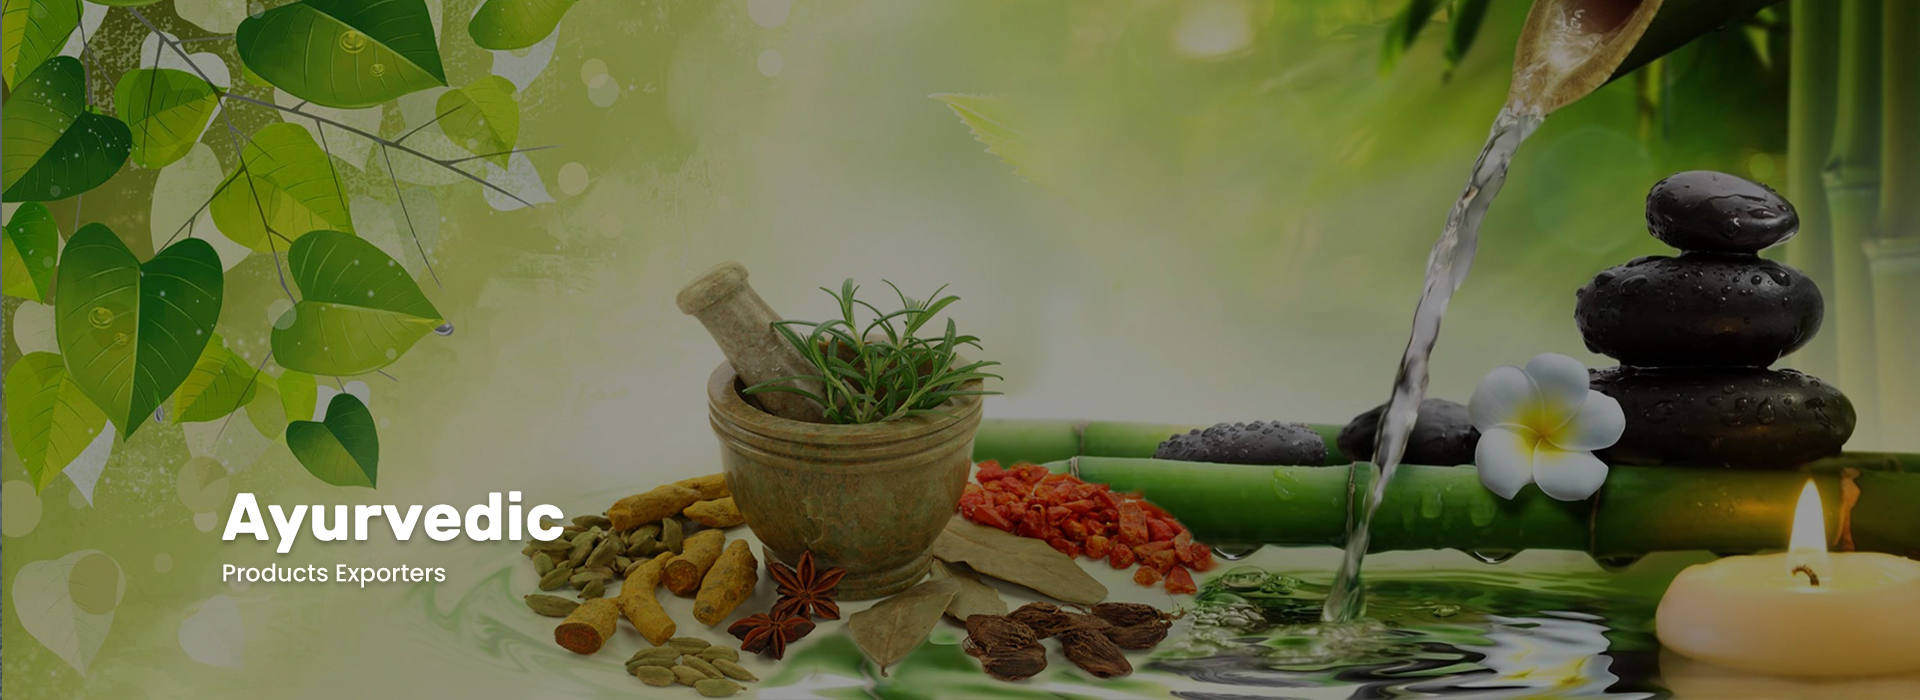 Ayurvedic - Ayush Herbal Products Supplier in India